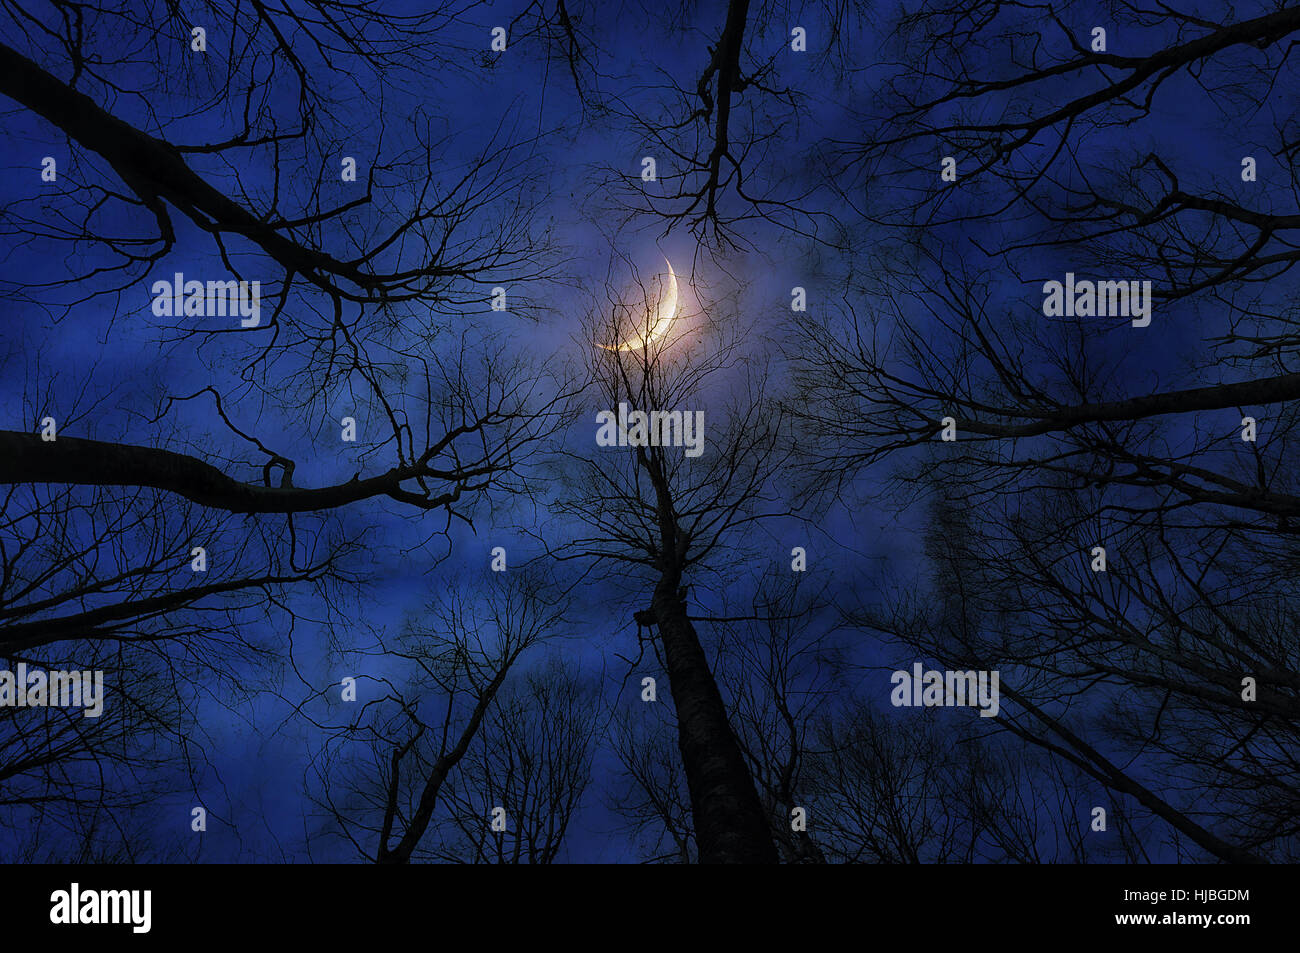 horror forest with moon at night - Stock Image